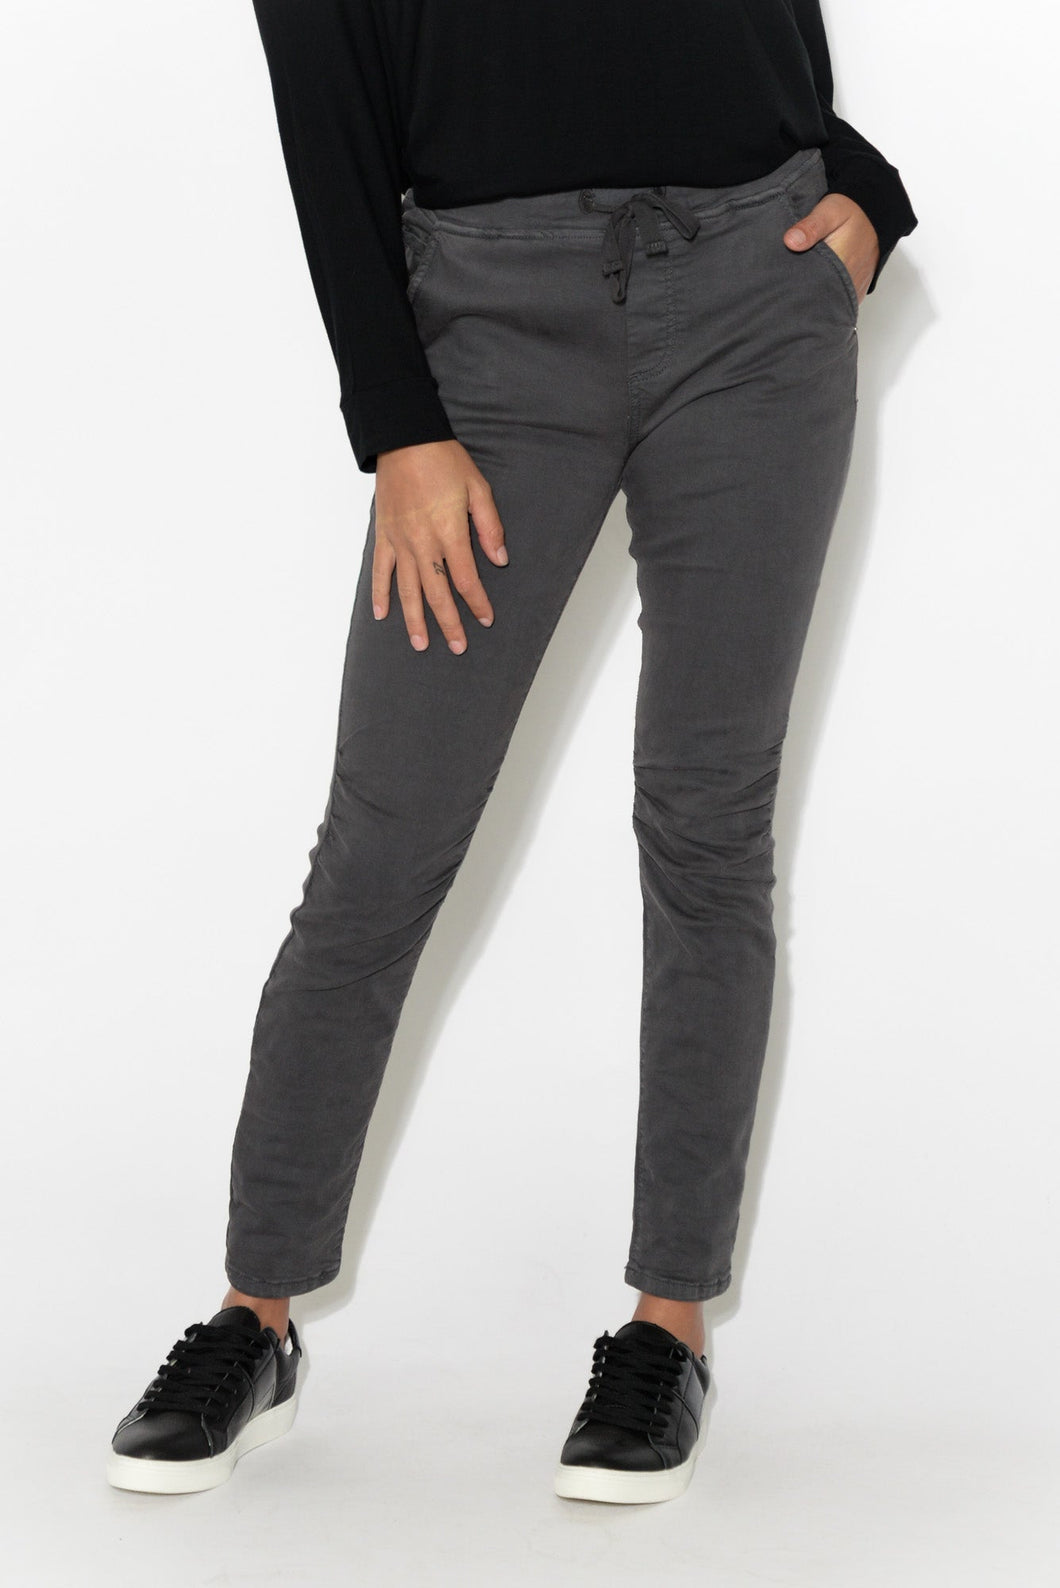 Arden Charcoal Cotton Tie Pant